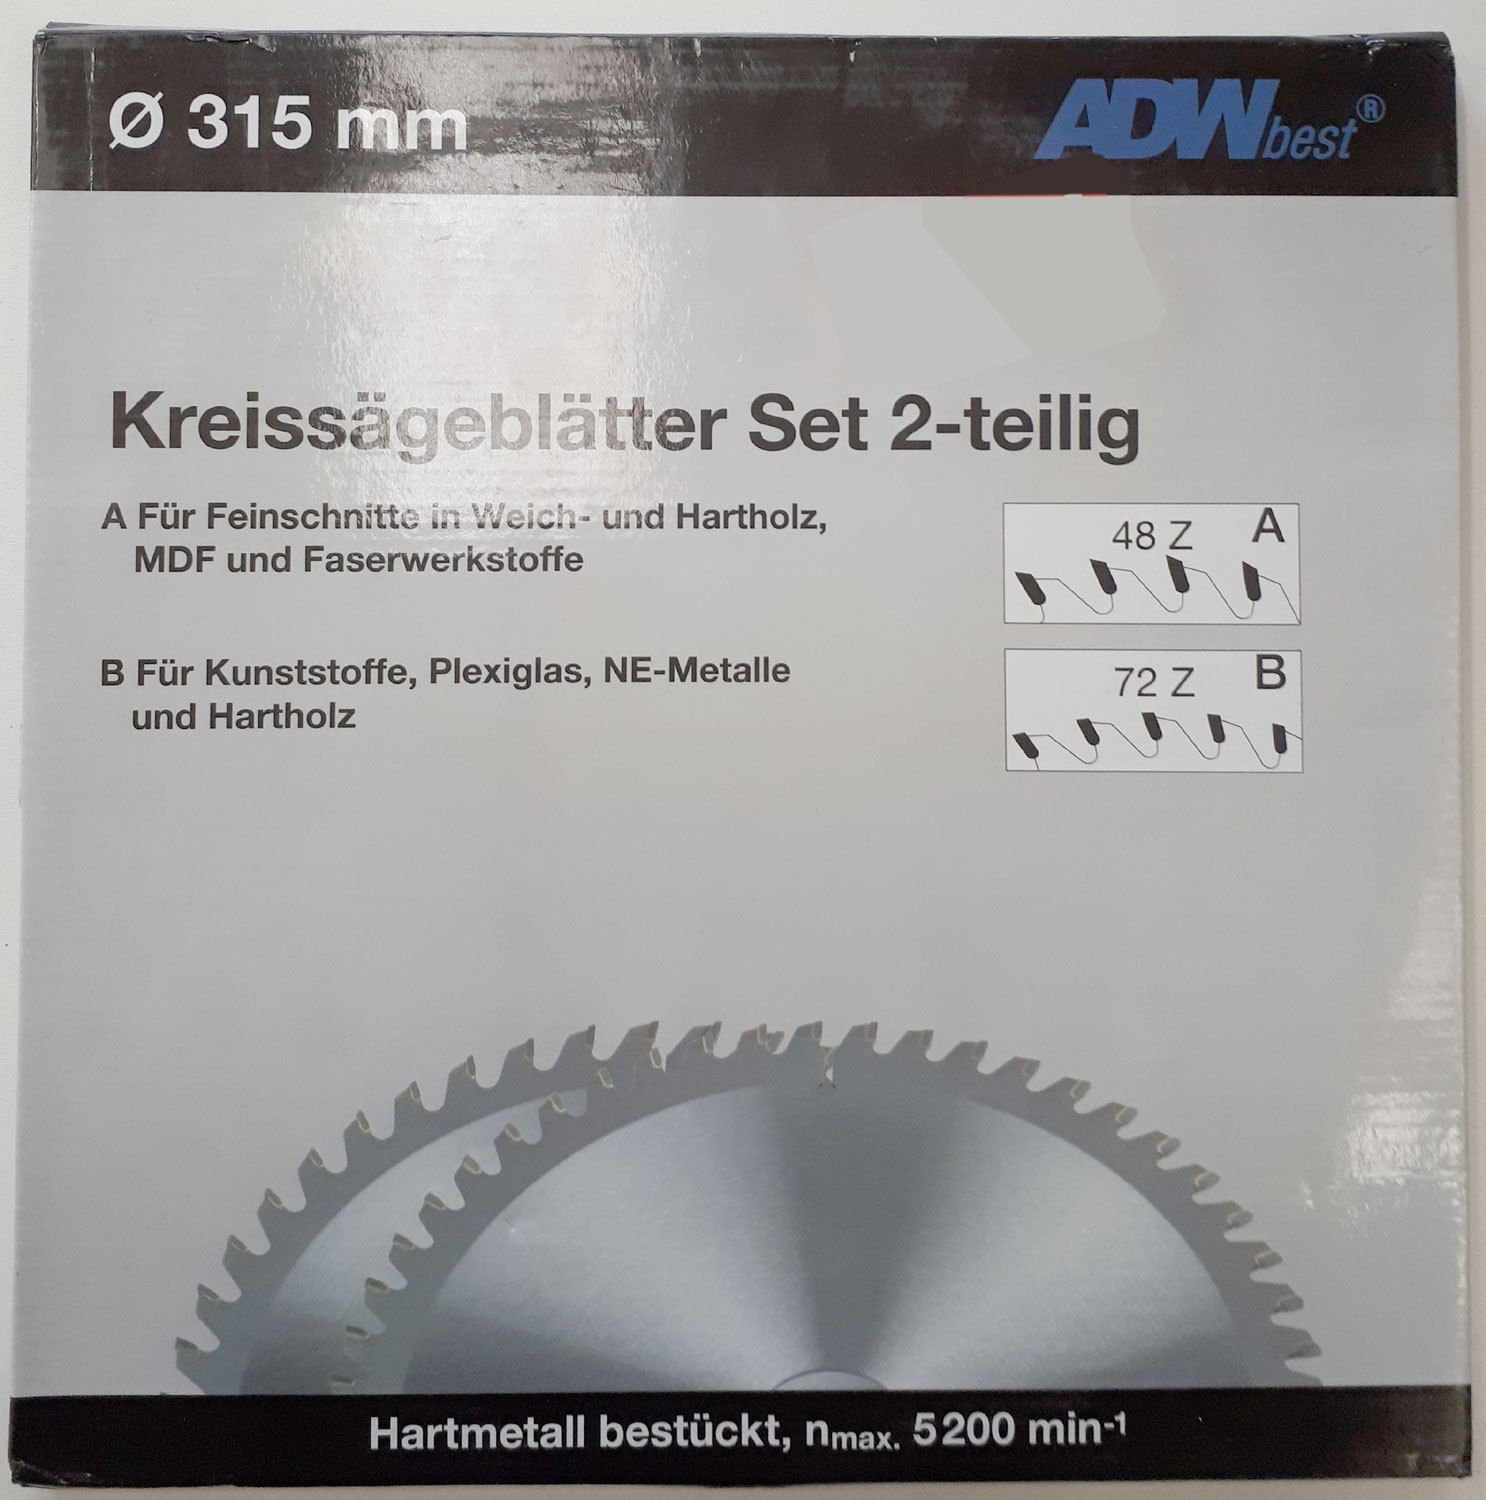 adwbest kreissä geblä tter 315  mm, lot de 2  48  dents WZ et 72  dents tr (F), 30  mm alé sage lot de 2 48 dents WZ et 72 dents tr (F) 30 mm alésage ADW best